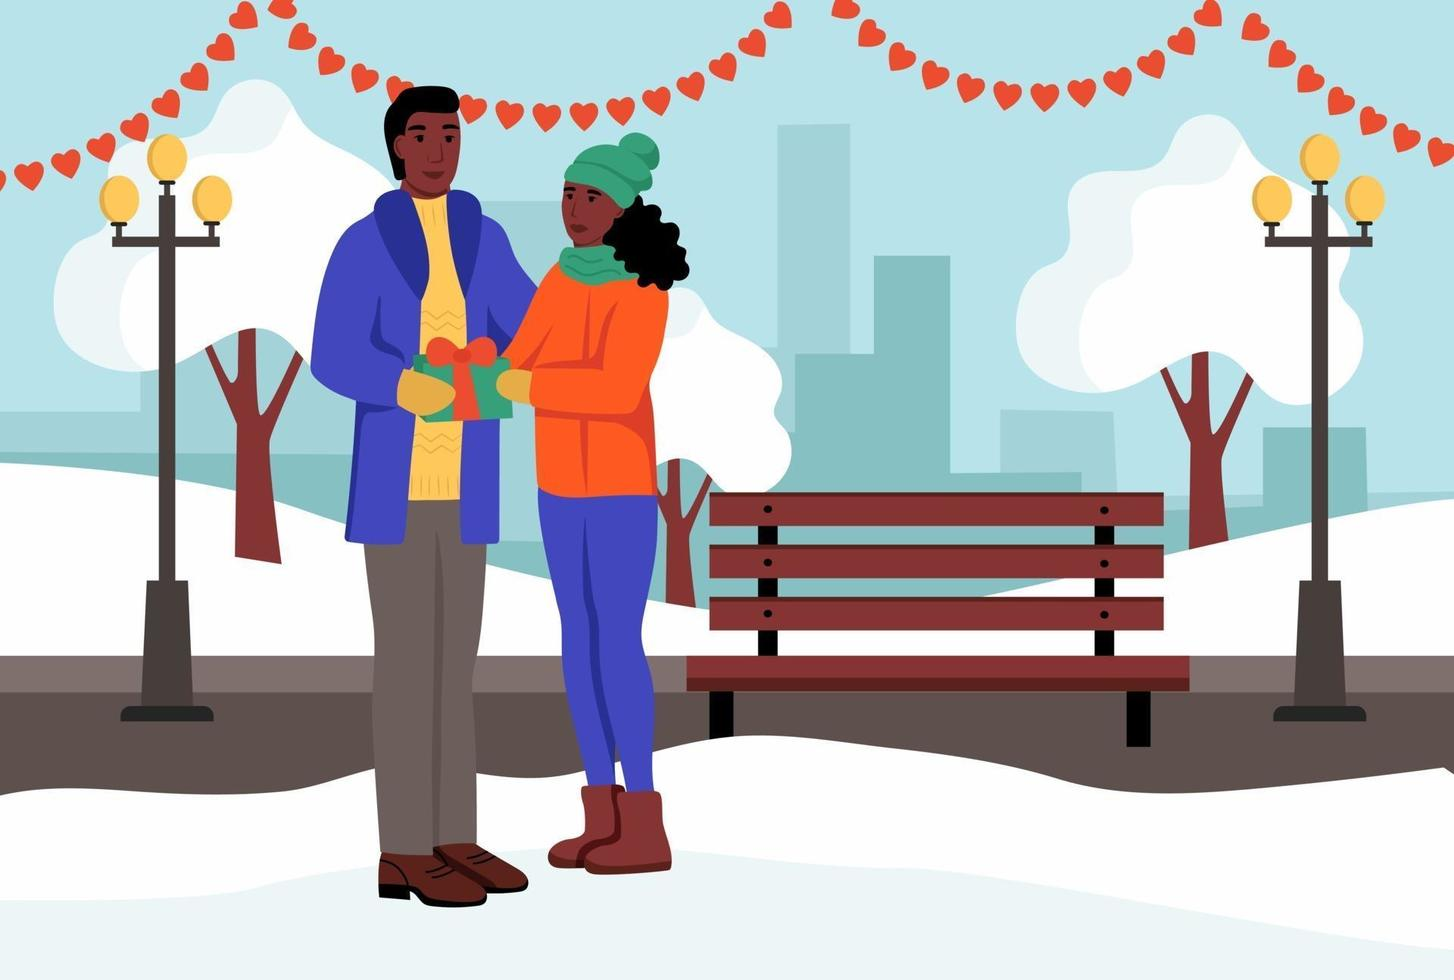 A couple exchange gifts  in a winter Park. A young man and woman celebrate Valentine's day. Flat vector illustration.